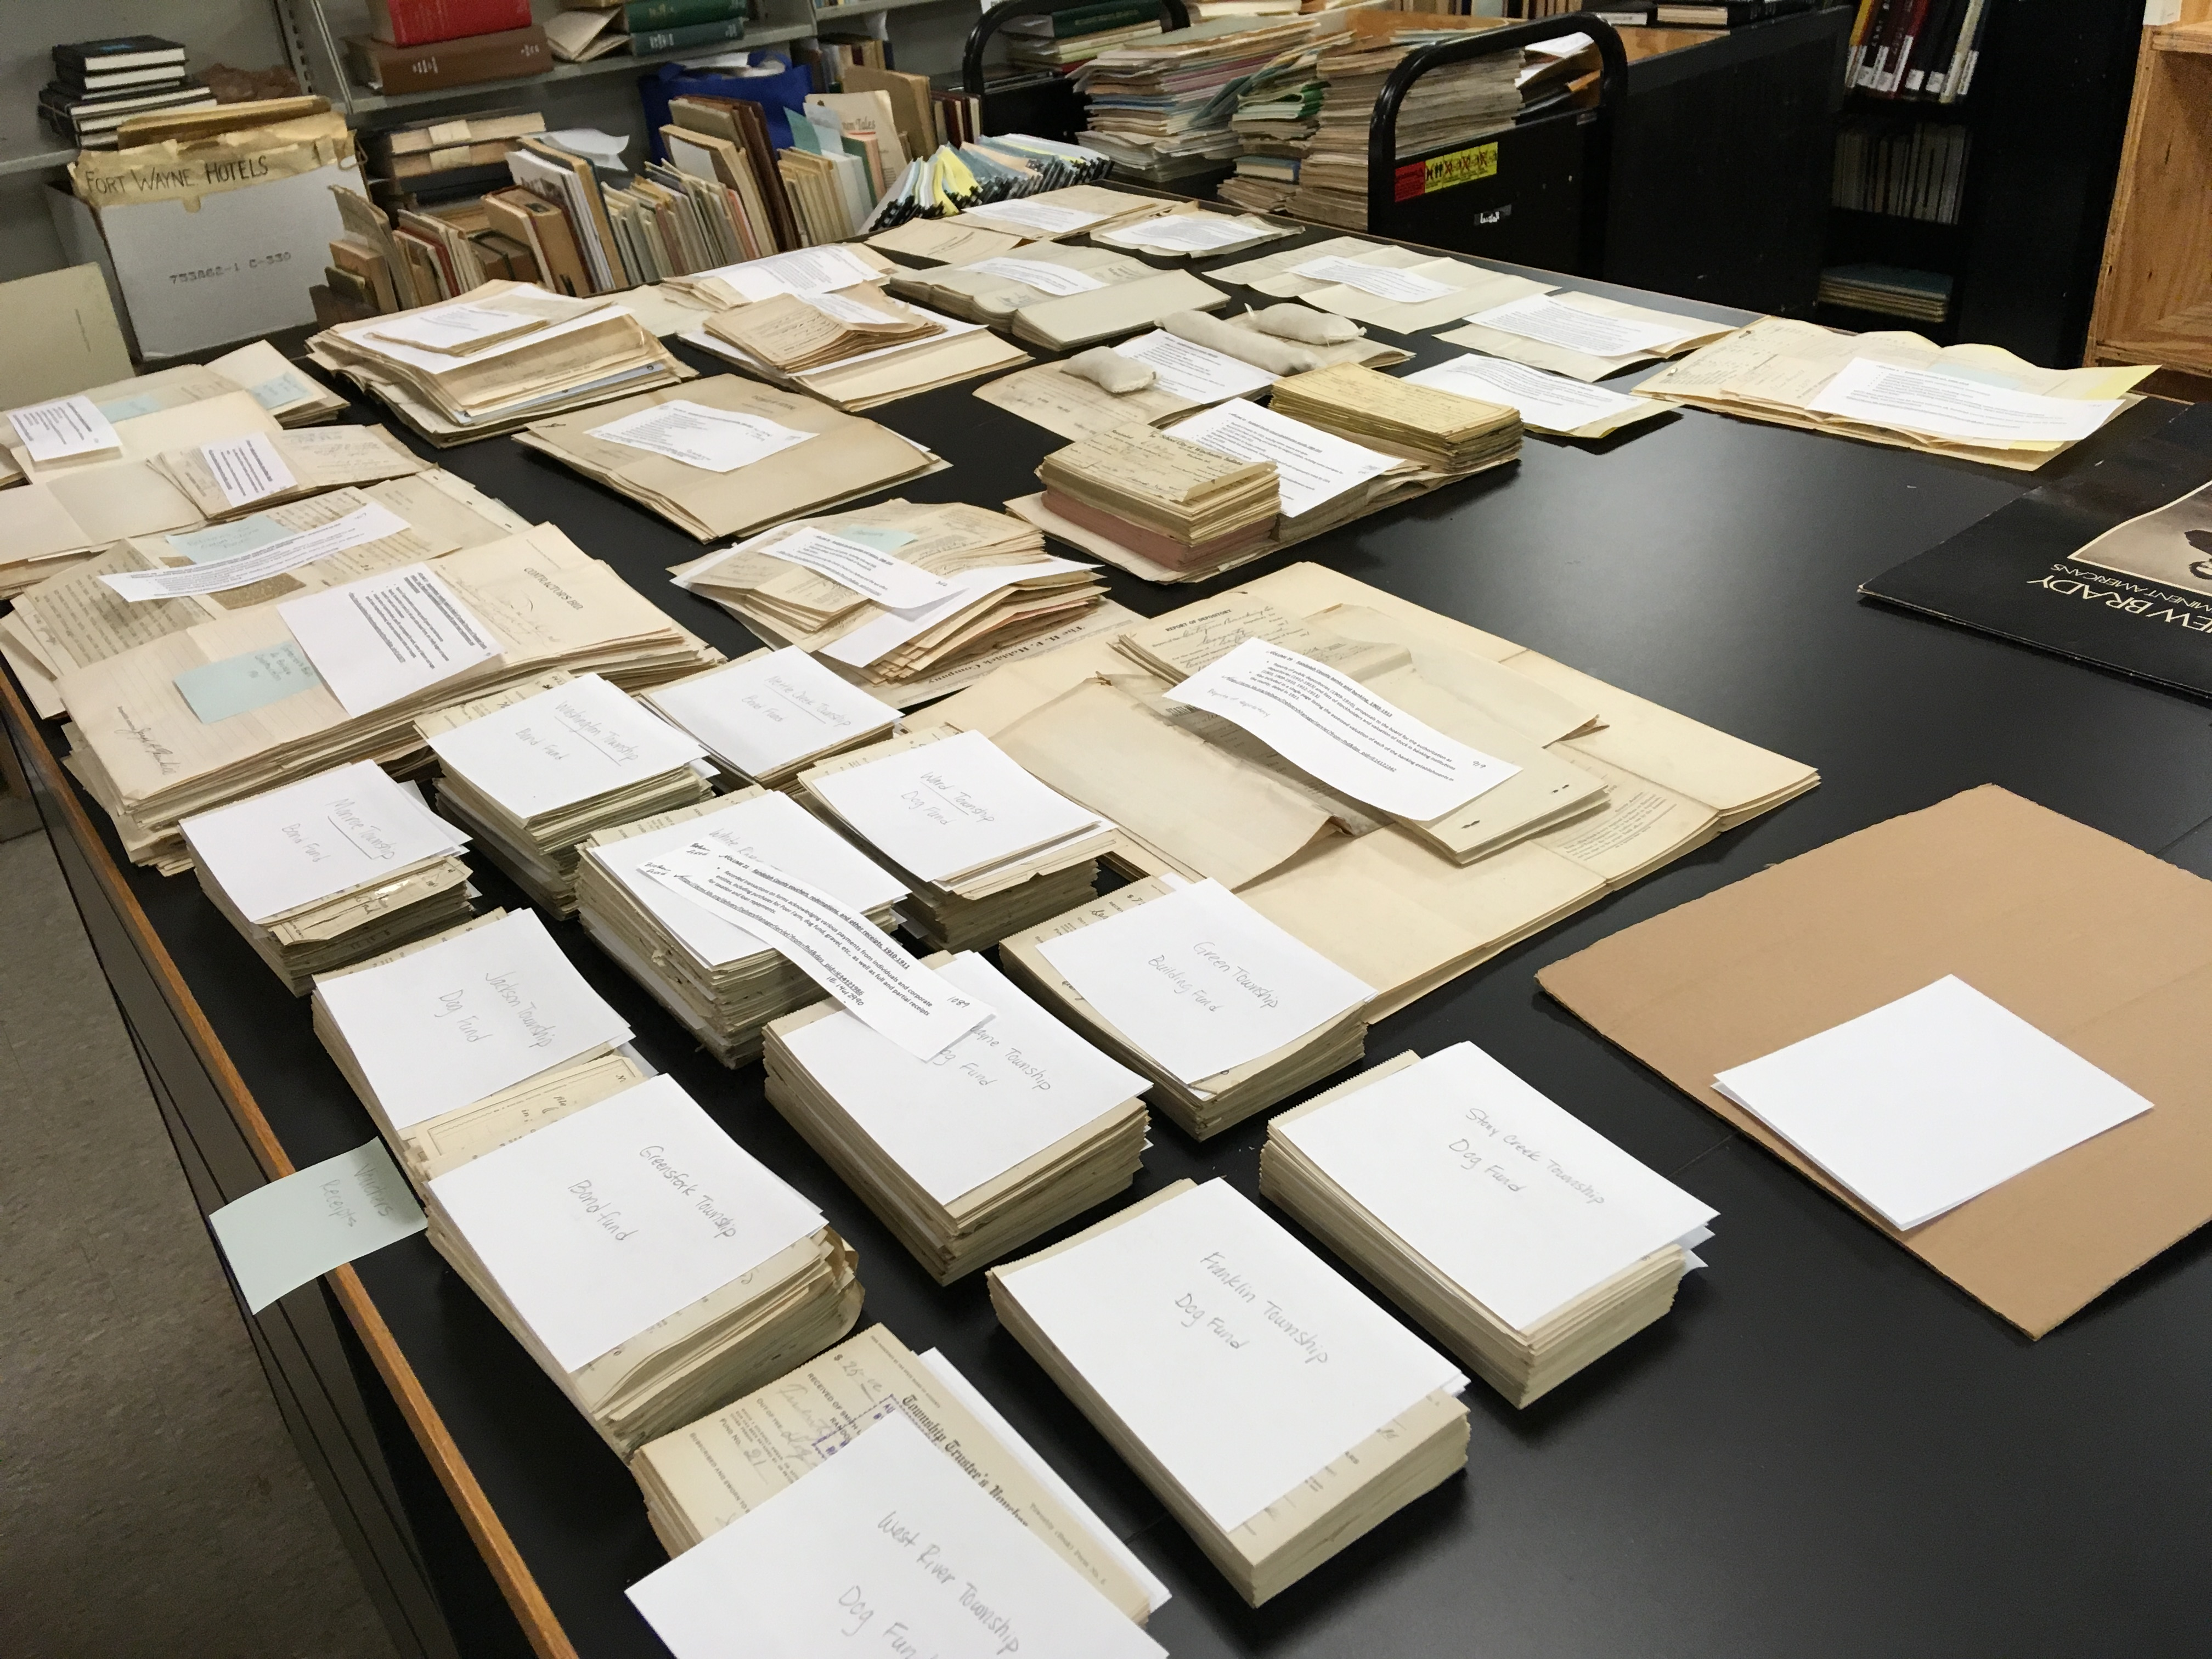 Piles of documents are ready to be scanned at the Allen County Public Library in Fort Wayne, Indiana. The Taylors served a records preservation with their disabled adult son in the Indianapolis Indiana Mission. Photo courtesy of Rosalie Taylor.